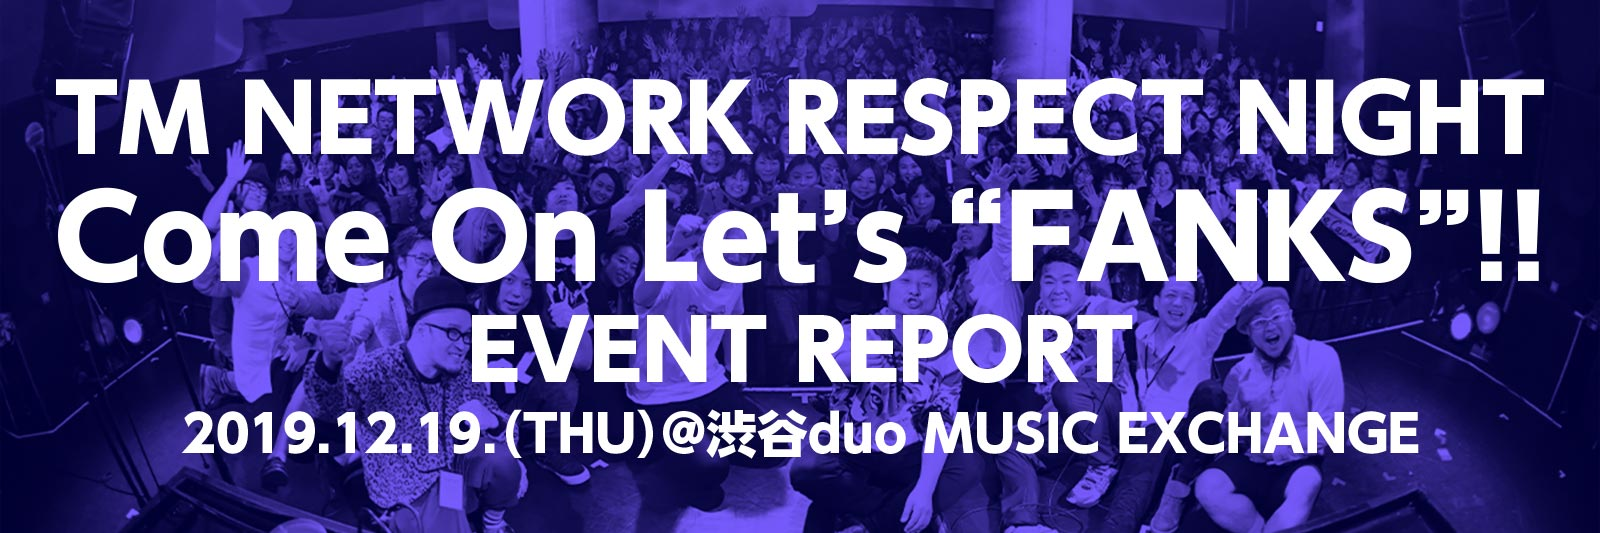 "TM NETWORK RESPECT NIGHT『Come On Let's ""FANKS""!!』EVENT REPORT 2019.12.19(THU)@渋谷duo MUSIC EXCHANGE"